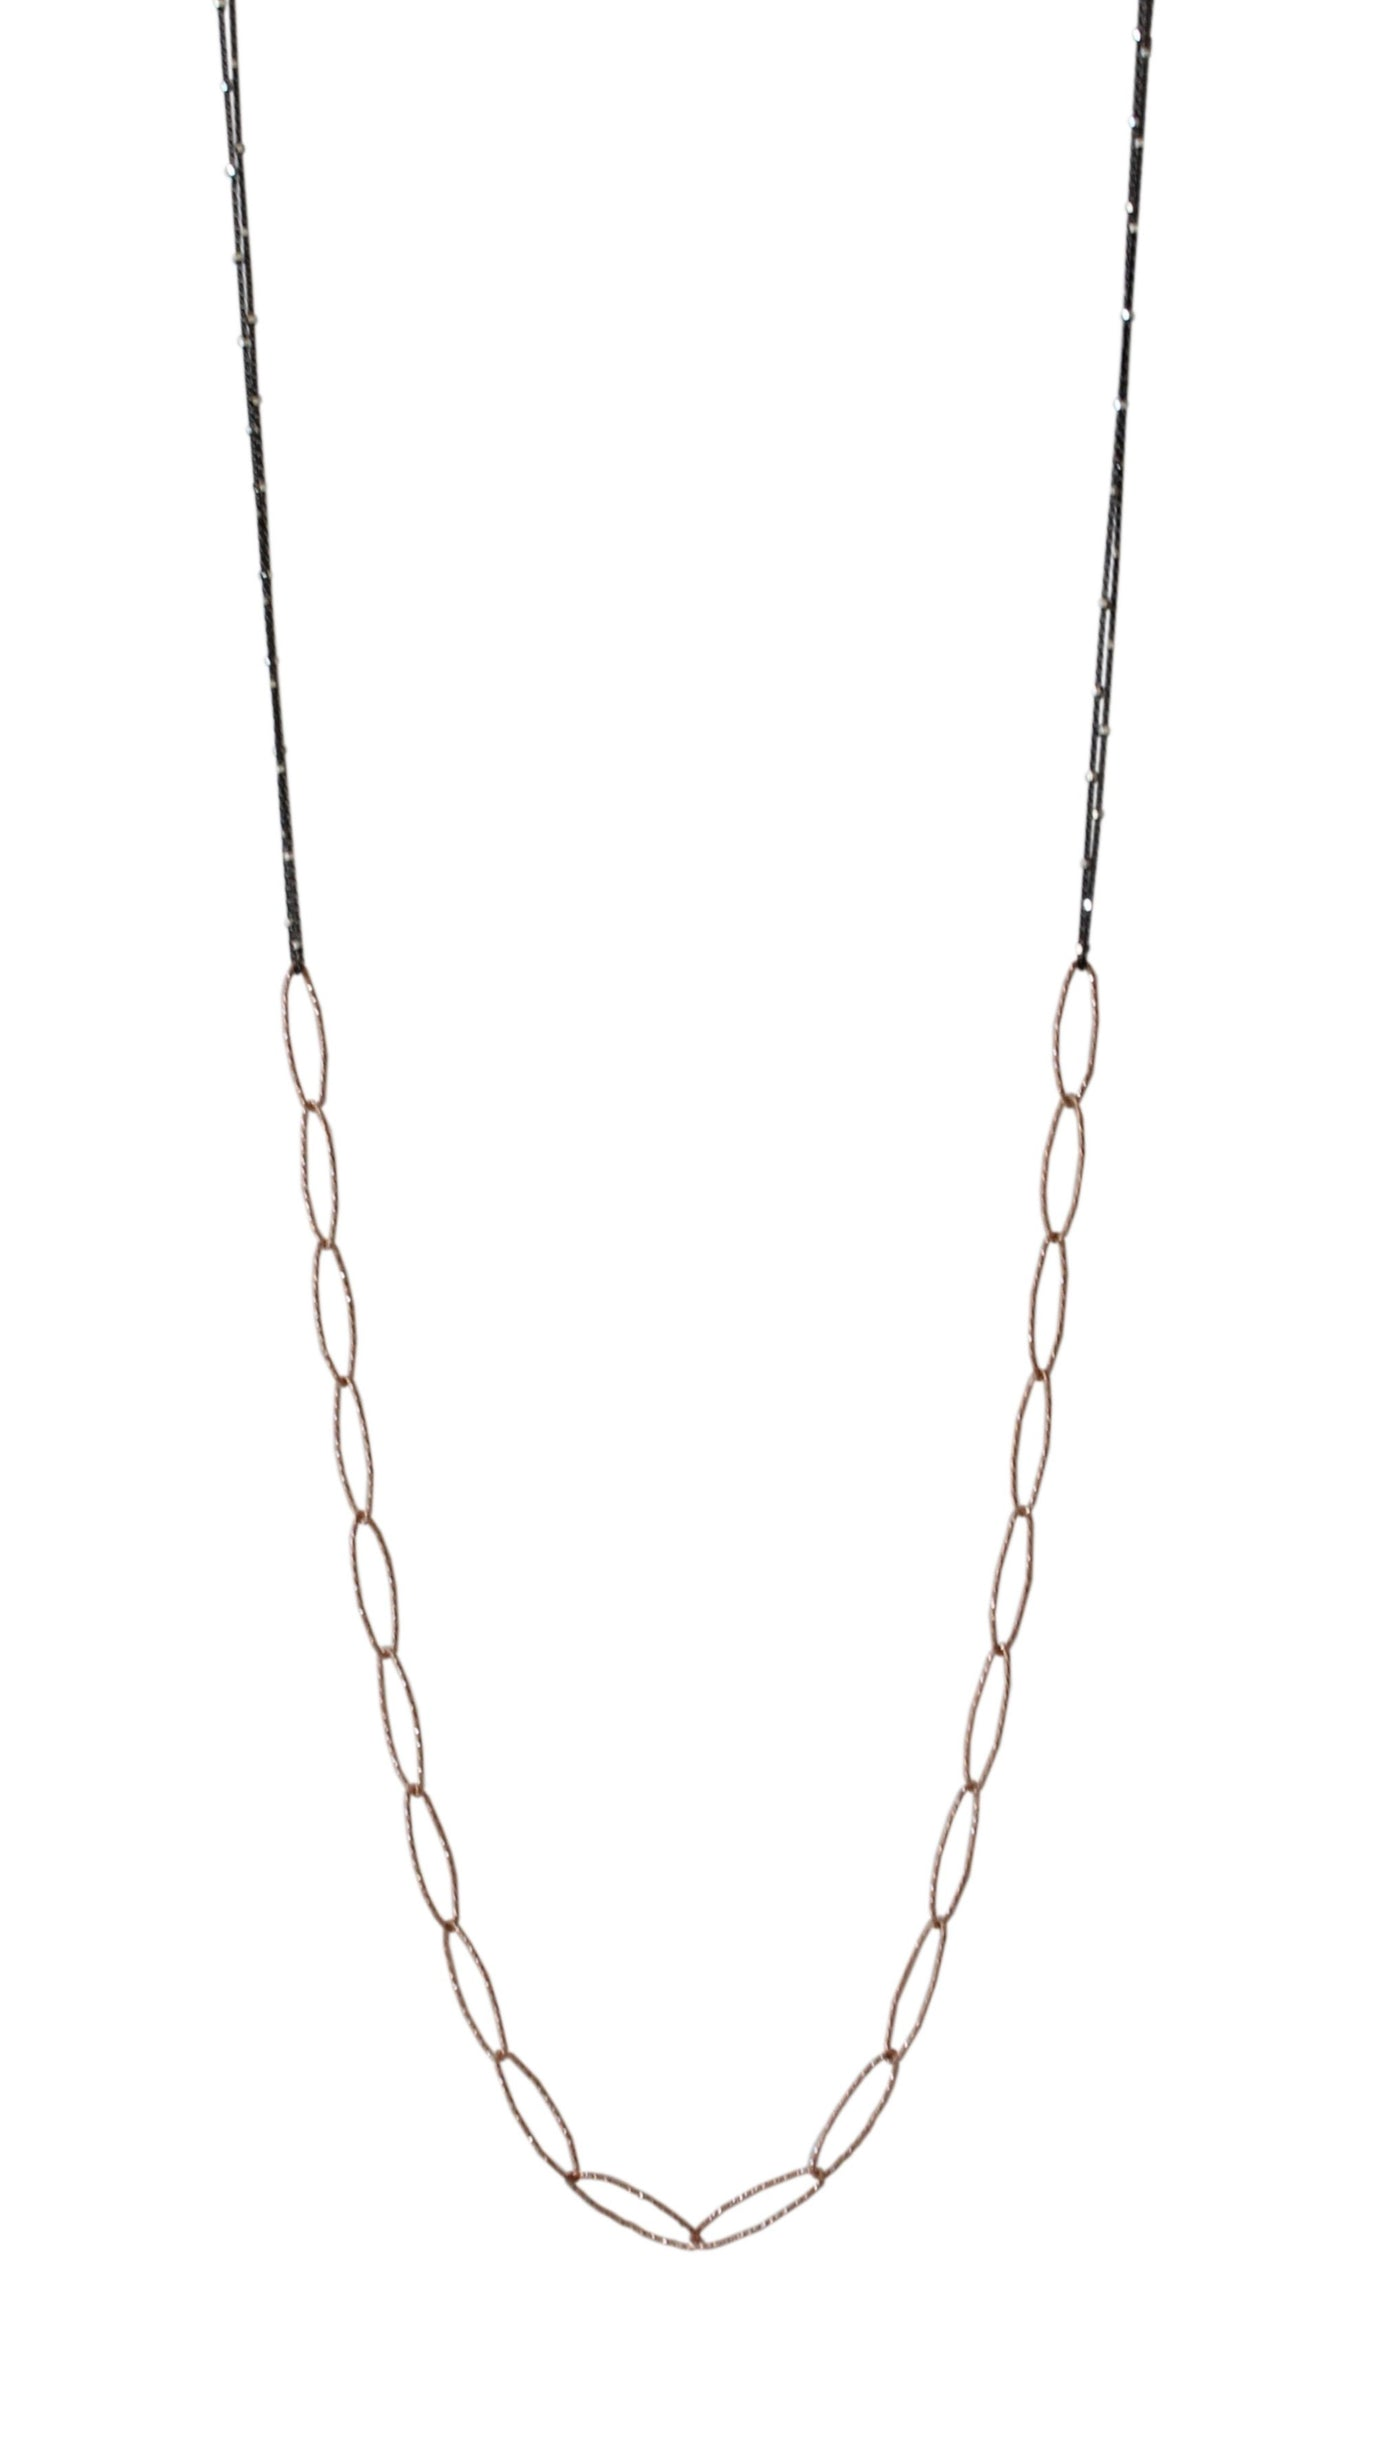 Harmony Chain Necklace in Marquise Link